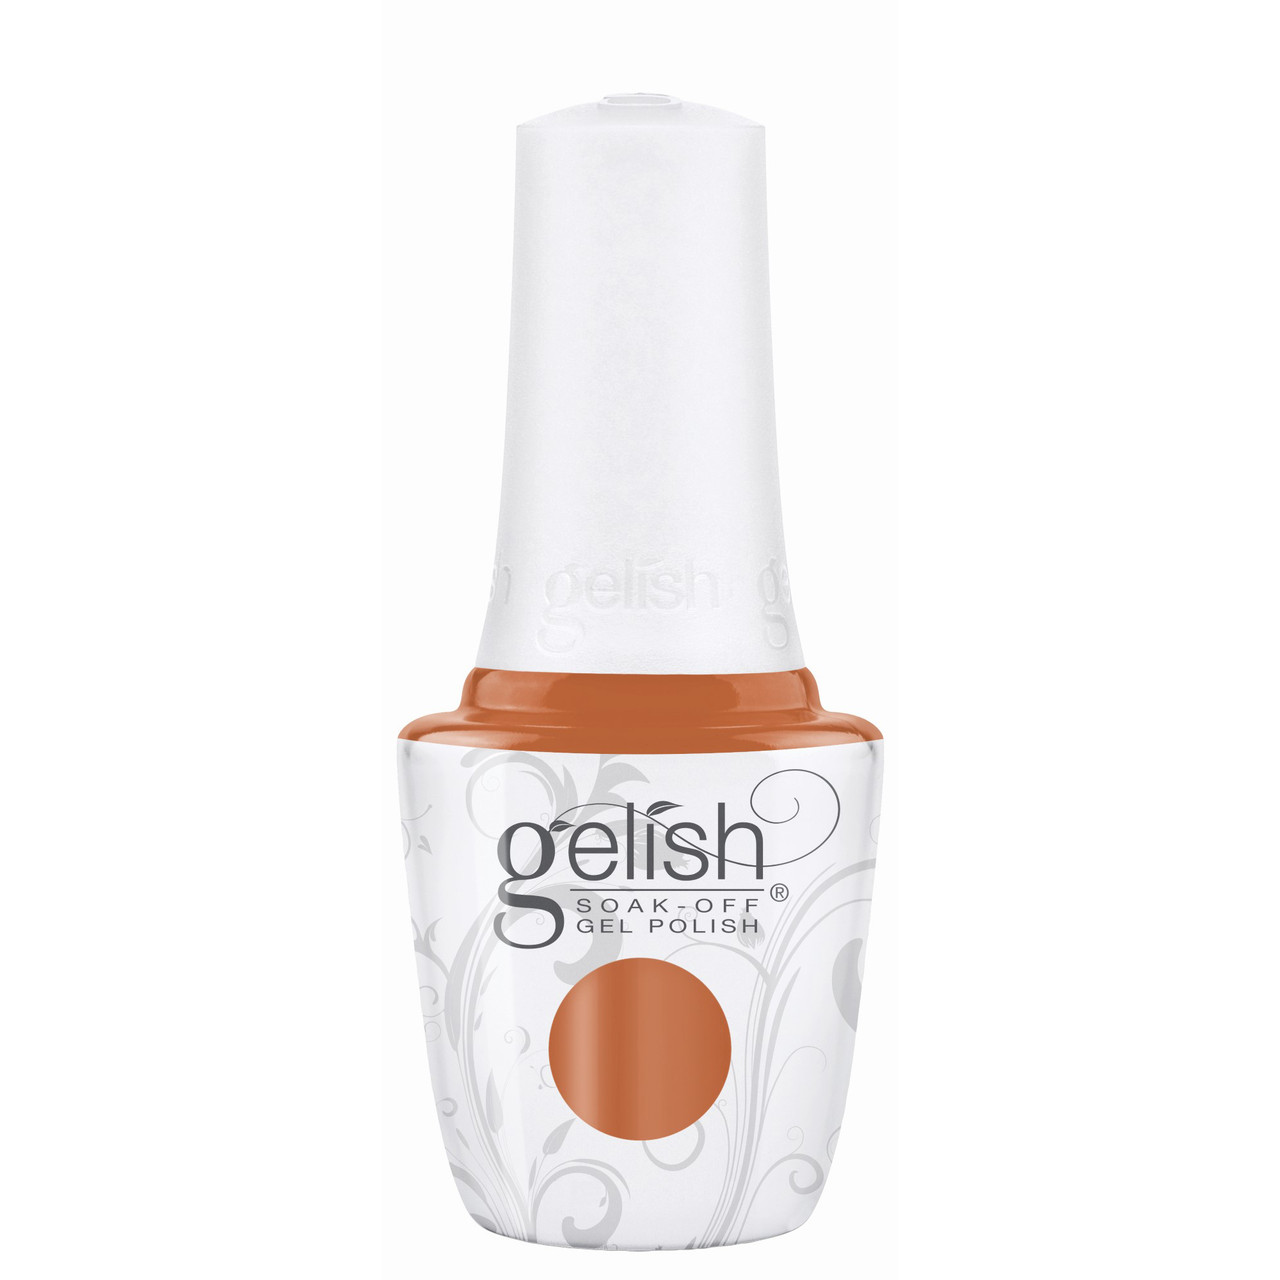 """Gelish """"Catch Me If You Can"""" 2 pc. Duo - Soak Off Gel Polish and Lacquer - Pumpkin Creme"""